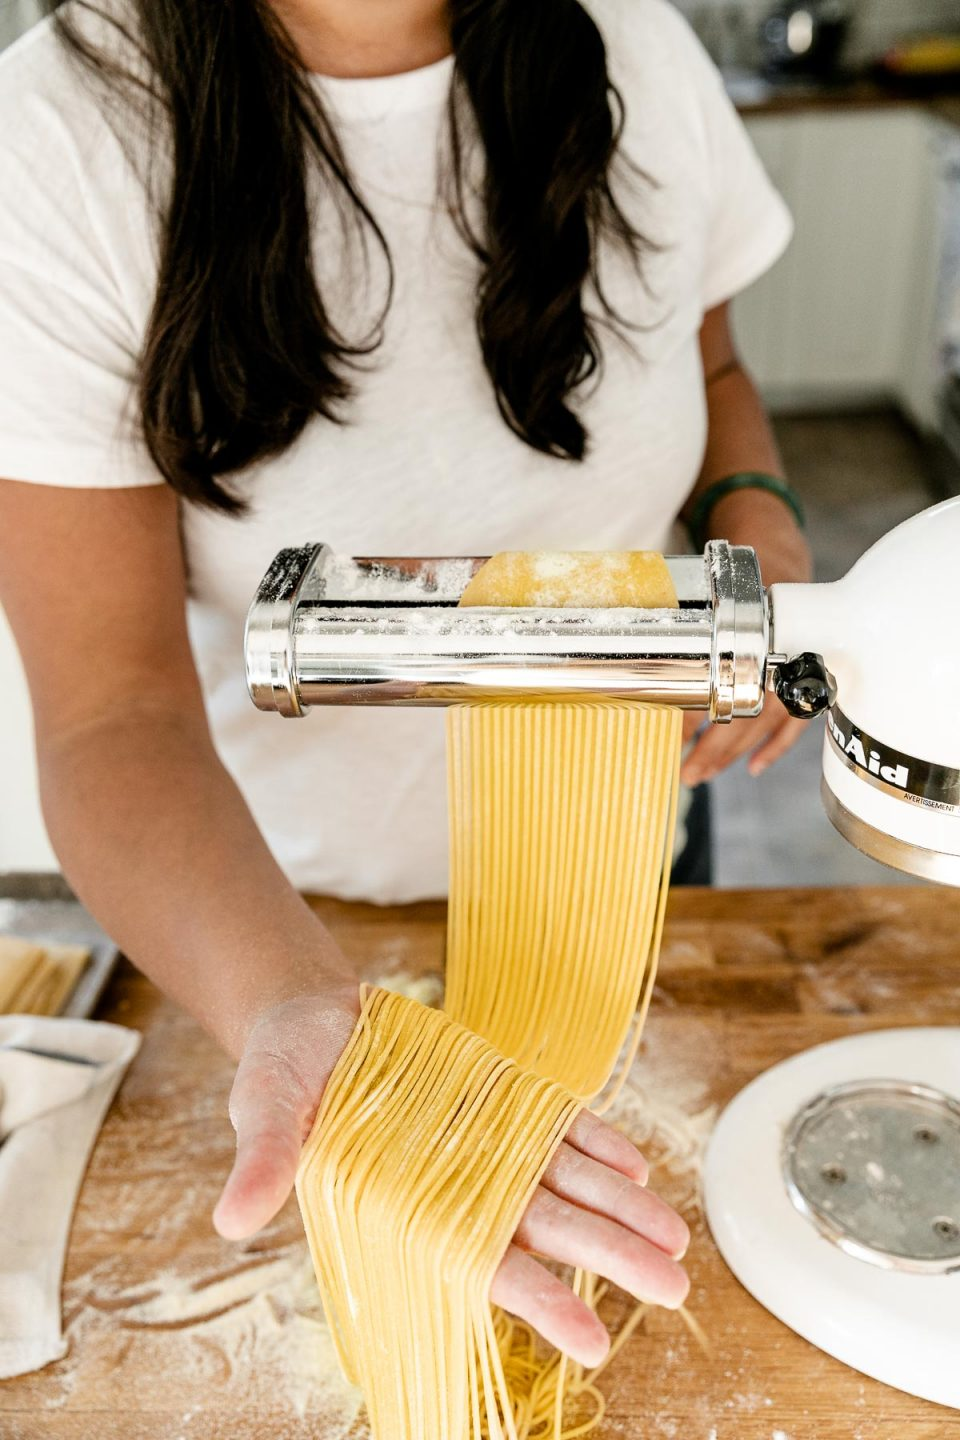 Jess of Plays Well With Butter feeds a large sheet of fresh pasta dough through a KitchenAid pasta cutting attachment connected to a Stand Mixer. As the pasta dough is fed through the cutter, the dough is cut into single strands of spaghetti. Her right hand catches the spaghetti noodles and lifts them up with a flat palm to display the cut noodles. The Stand Mixer rests atop a butcher block countertop. The countertop has been lightly dusted with flour and an aluminum baking sheet also sits on top of the countertop and is covered by a kitchen towel.